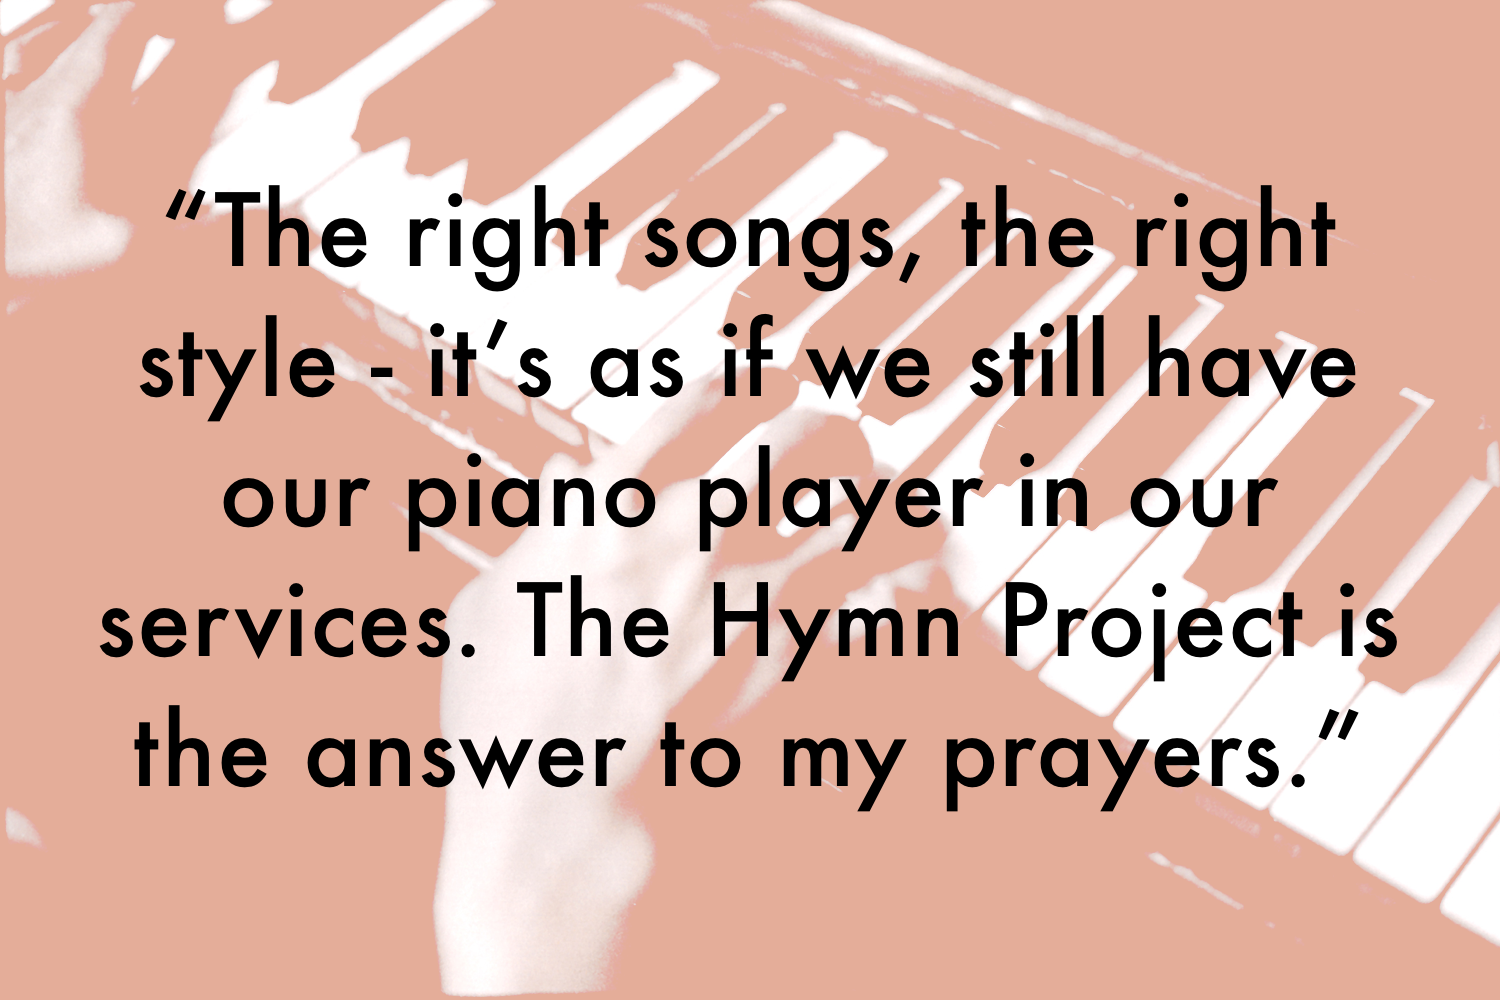 It's as if we still have our piano player in our services. Piano hymns on CD